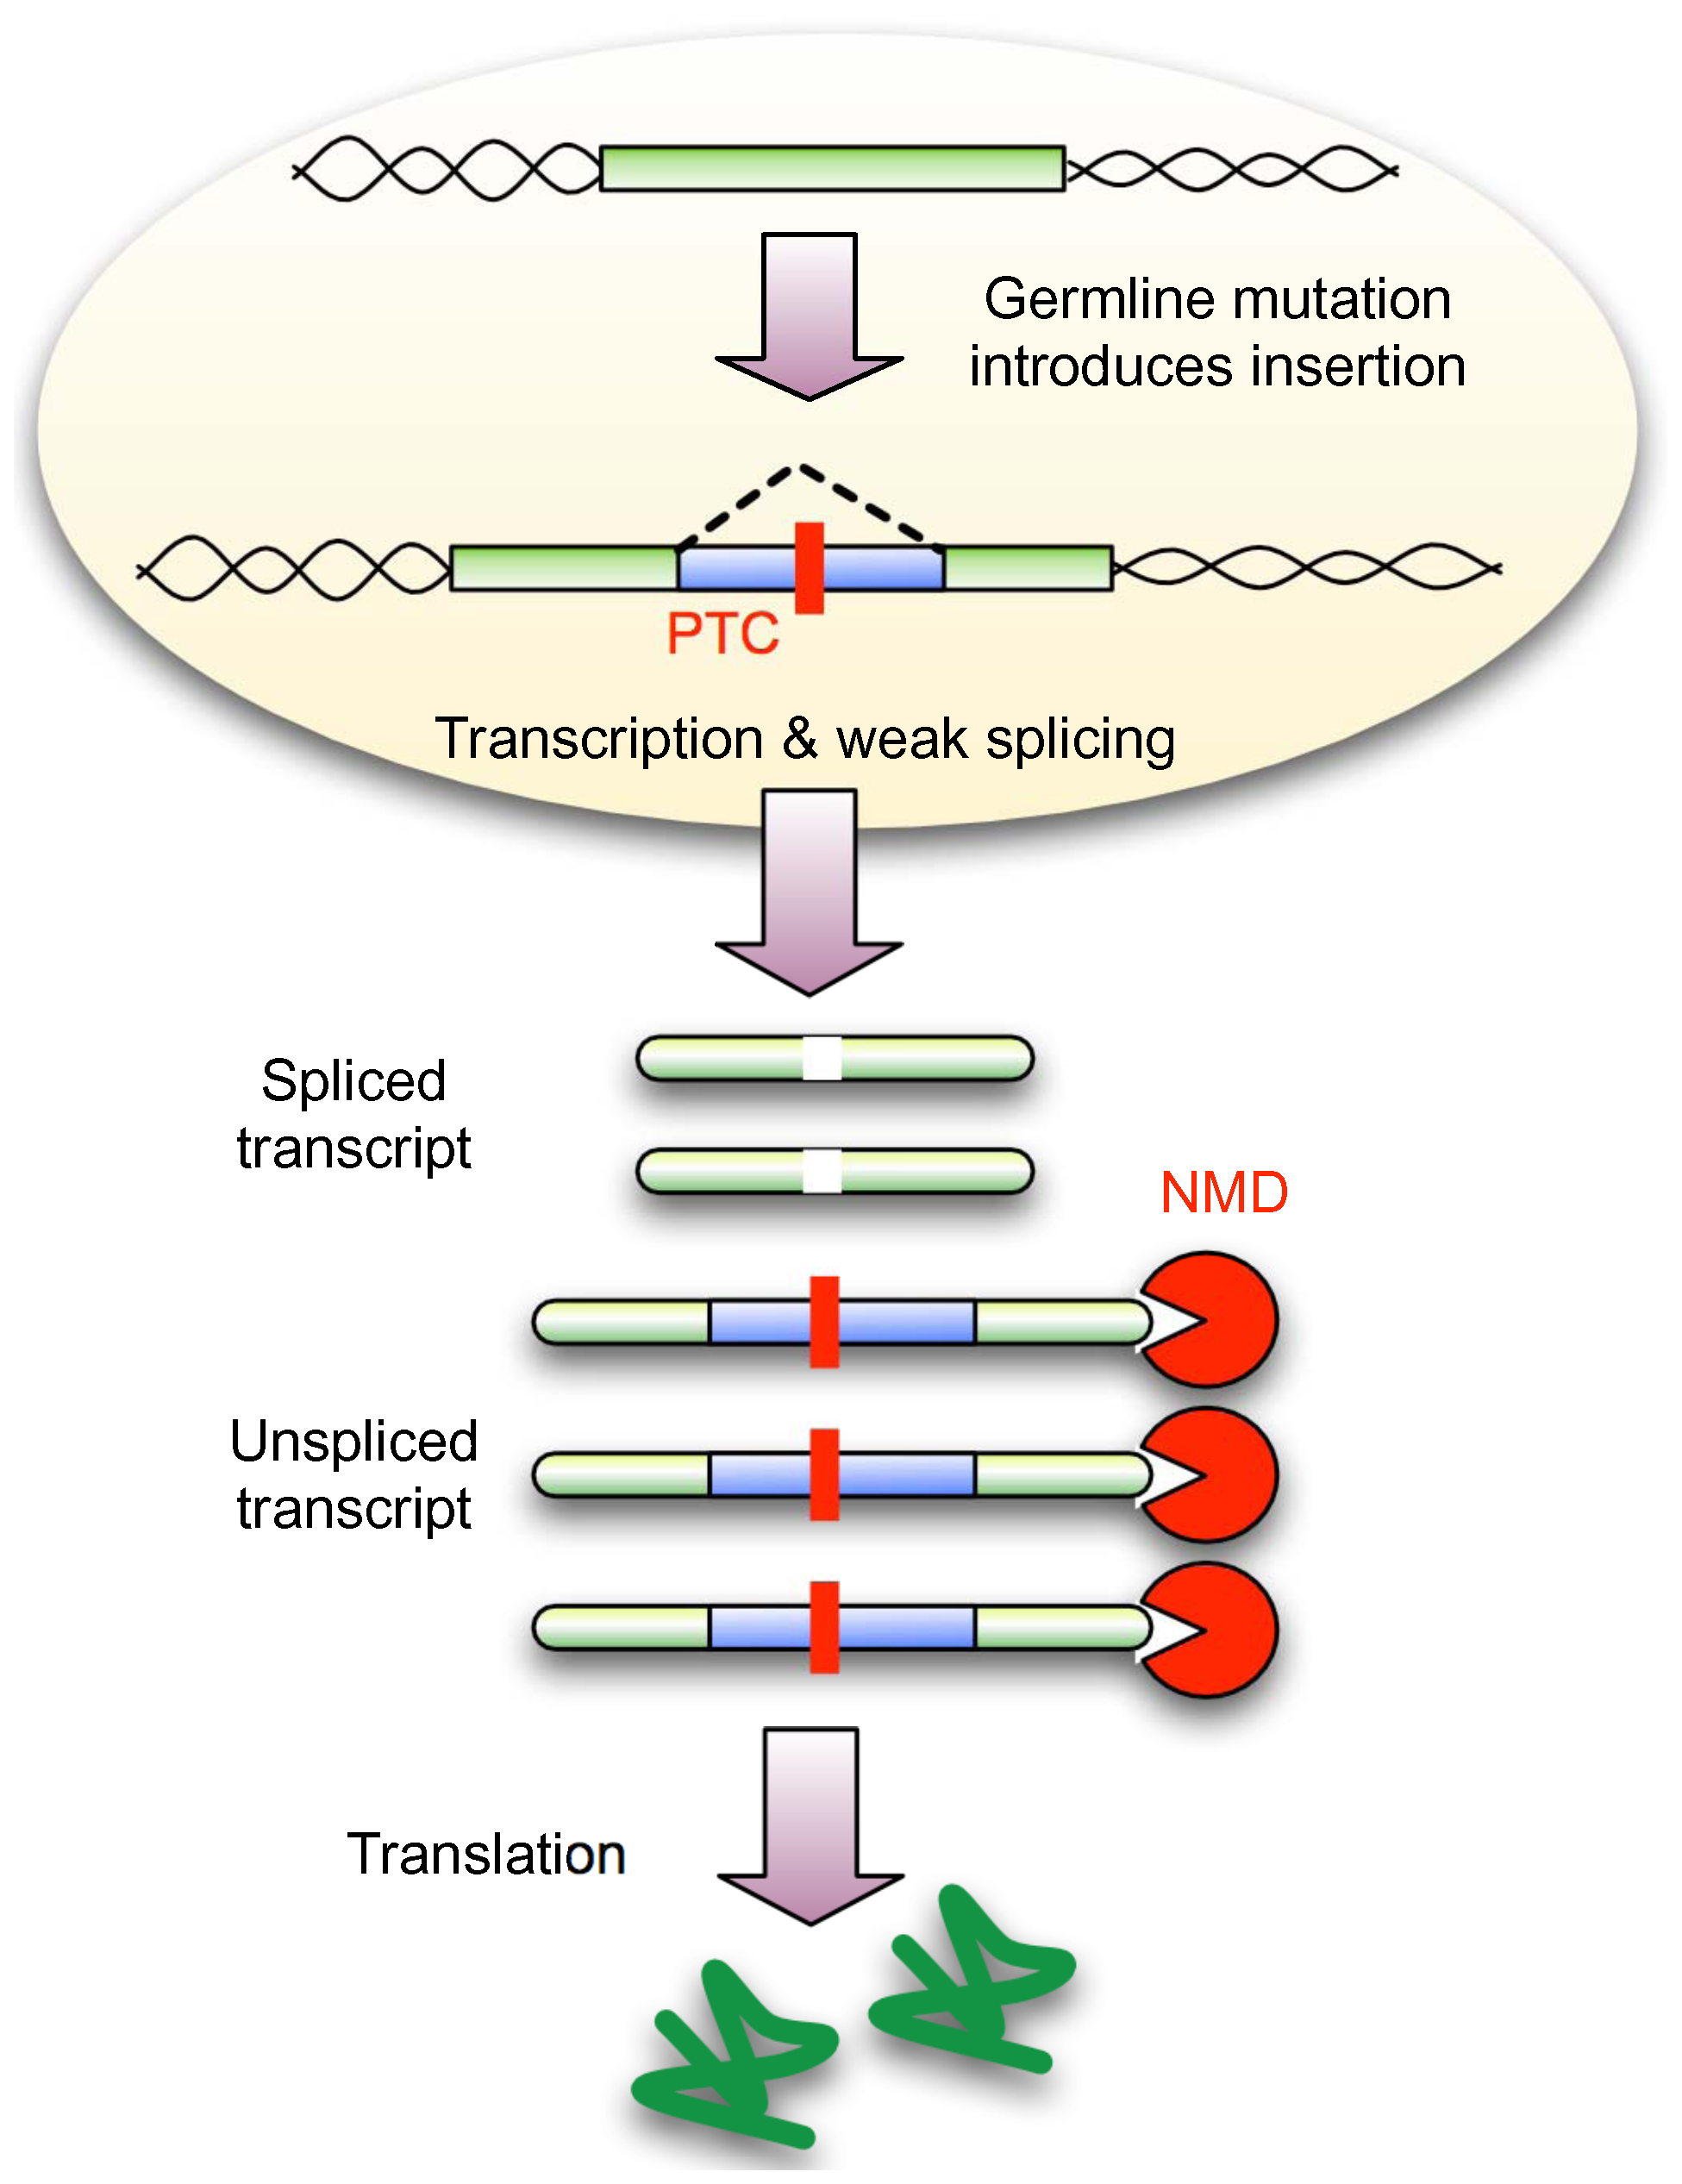 NMD conceals weakly spliced novel introns from selection.